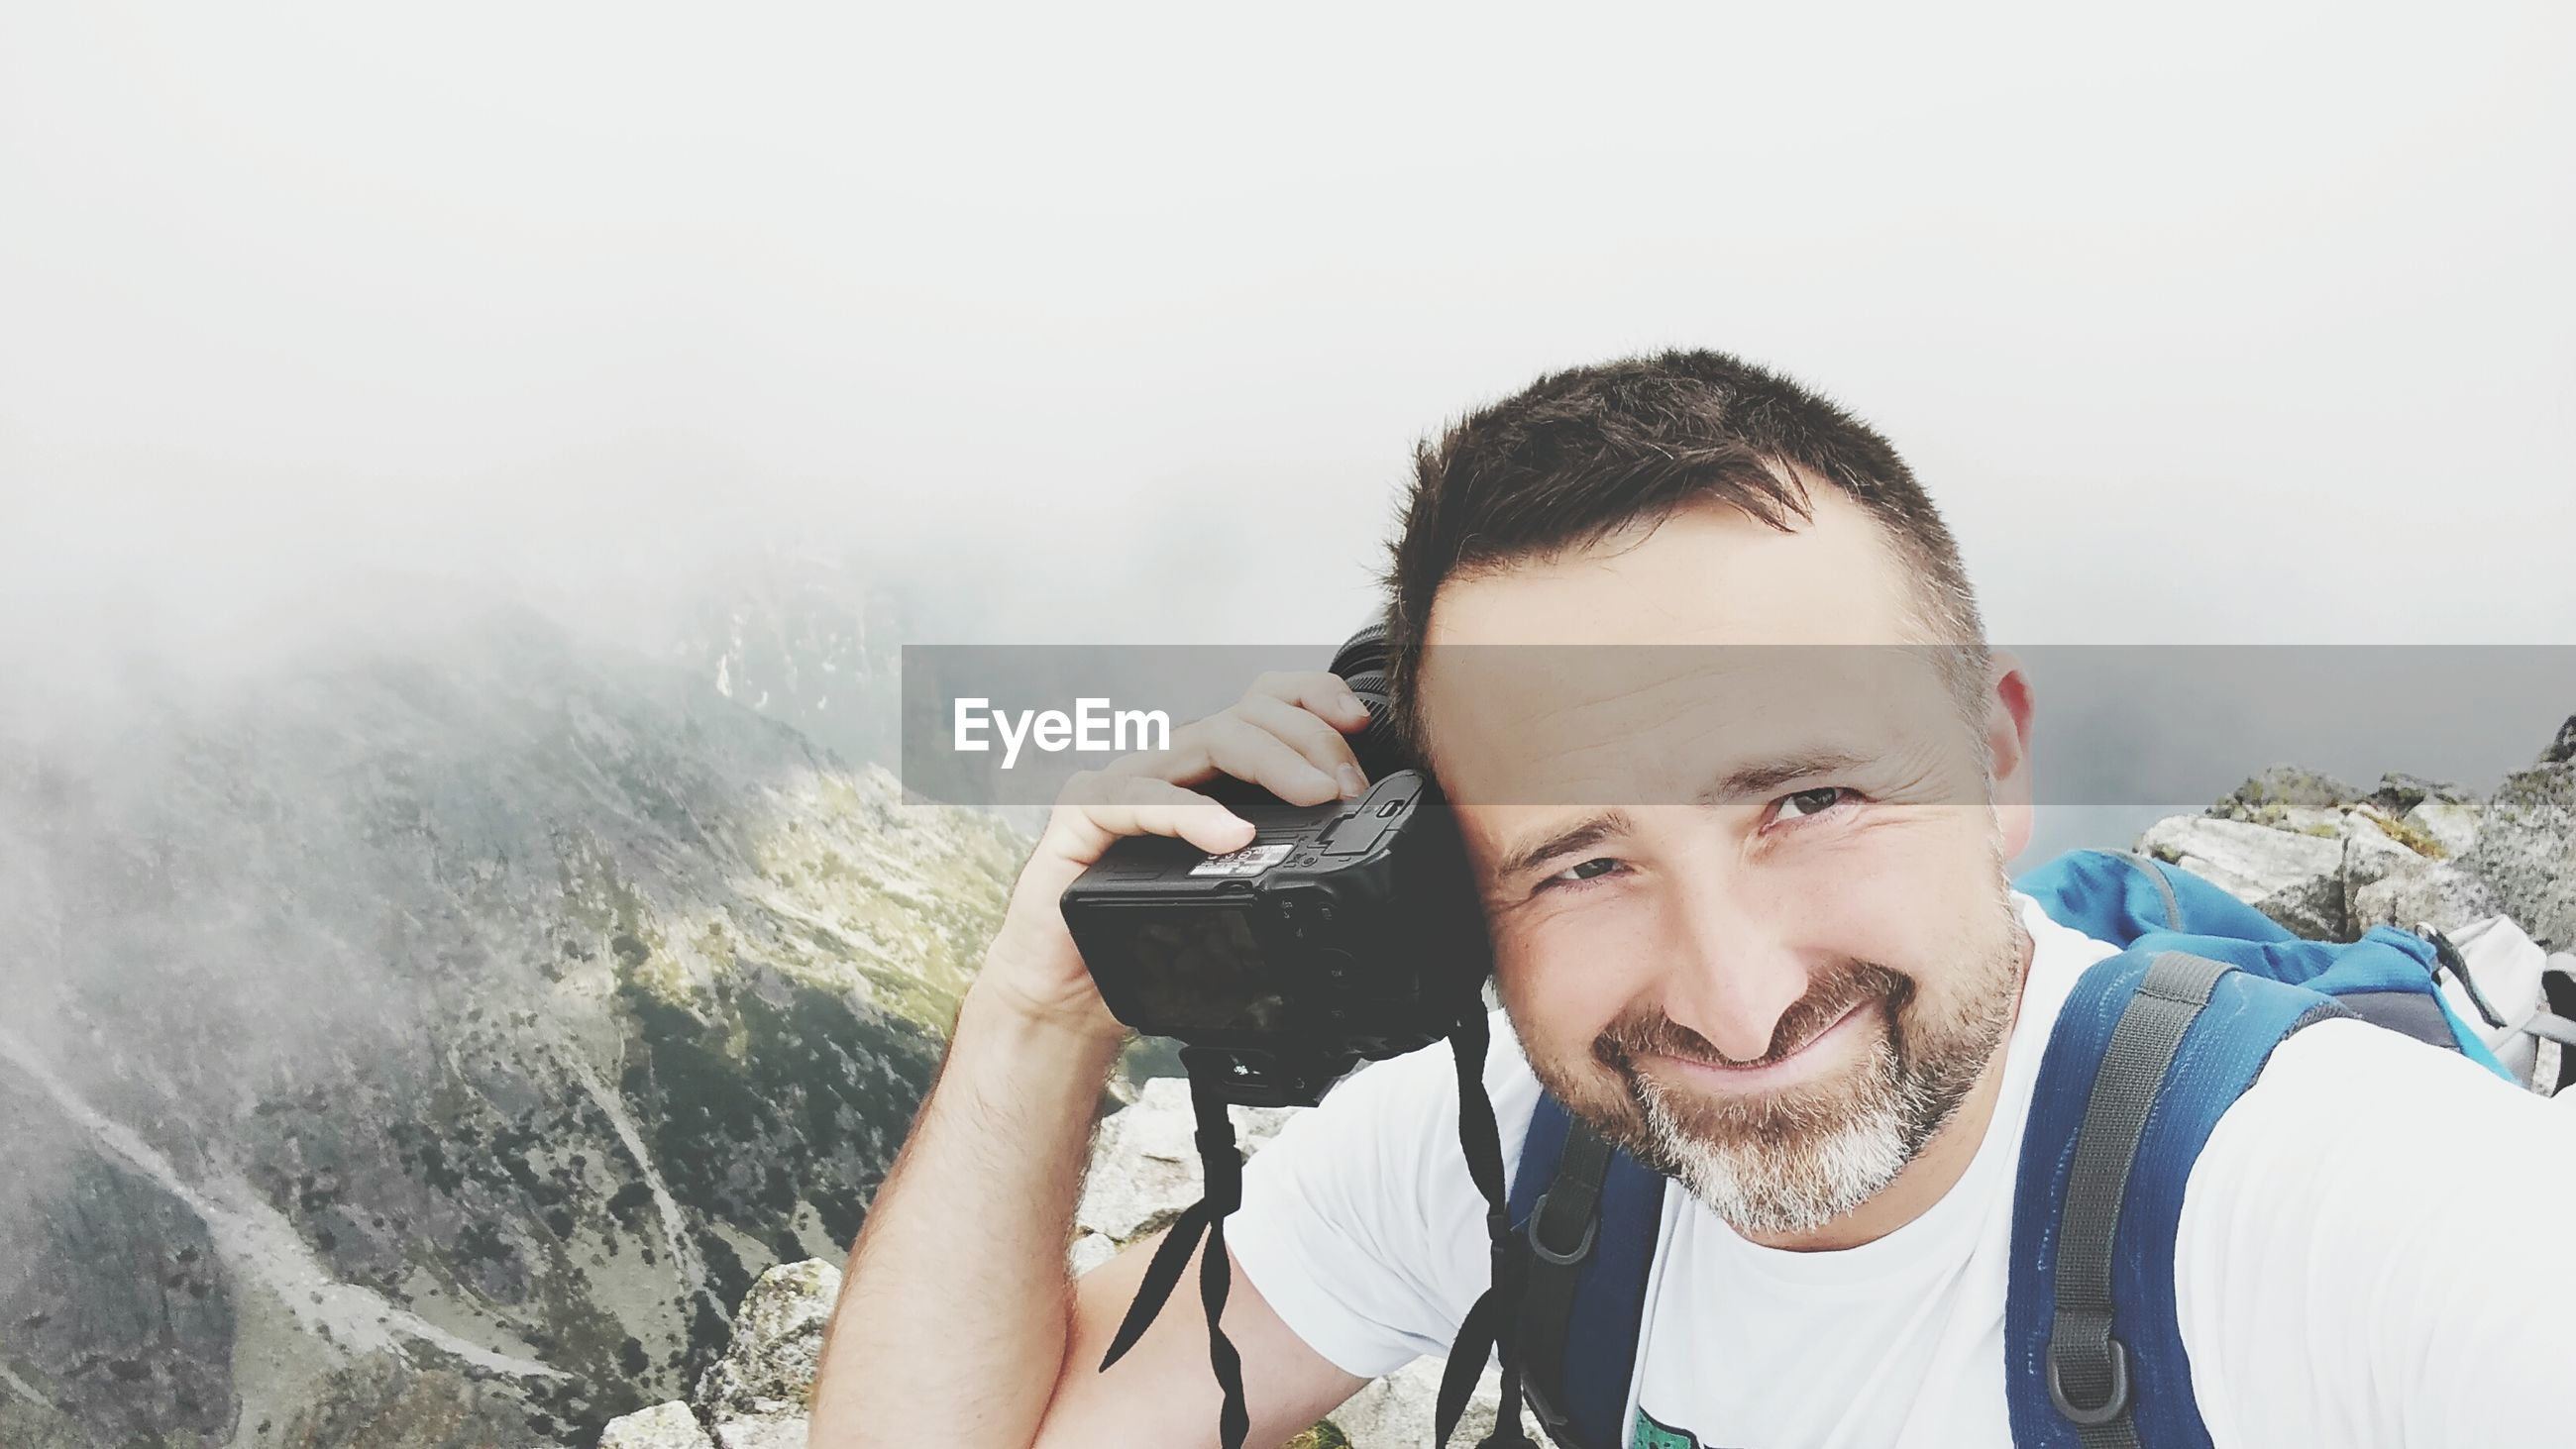 High angle portrait of smiling man holding camera on mountain in foggy weather